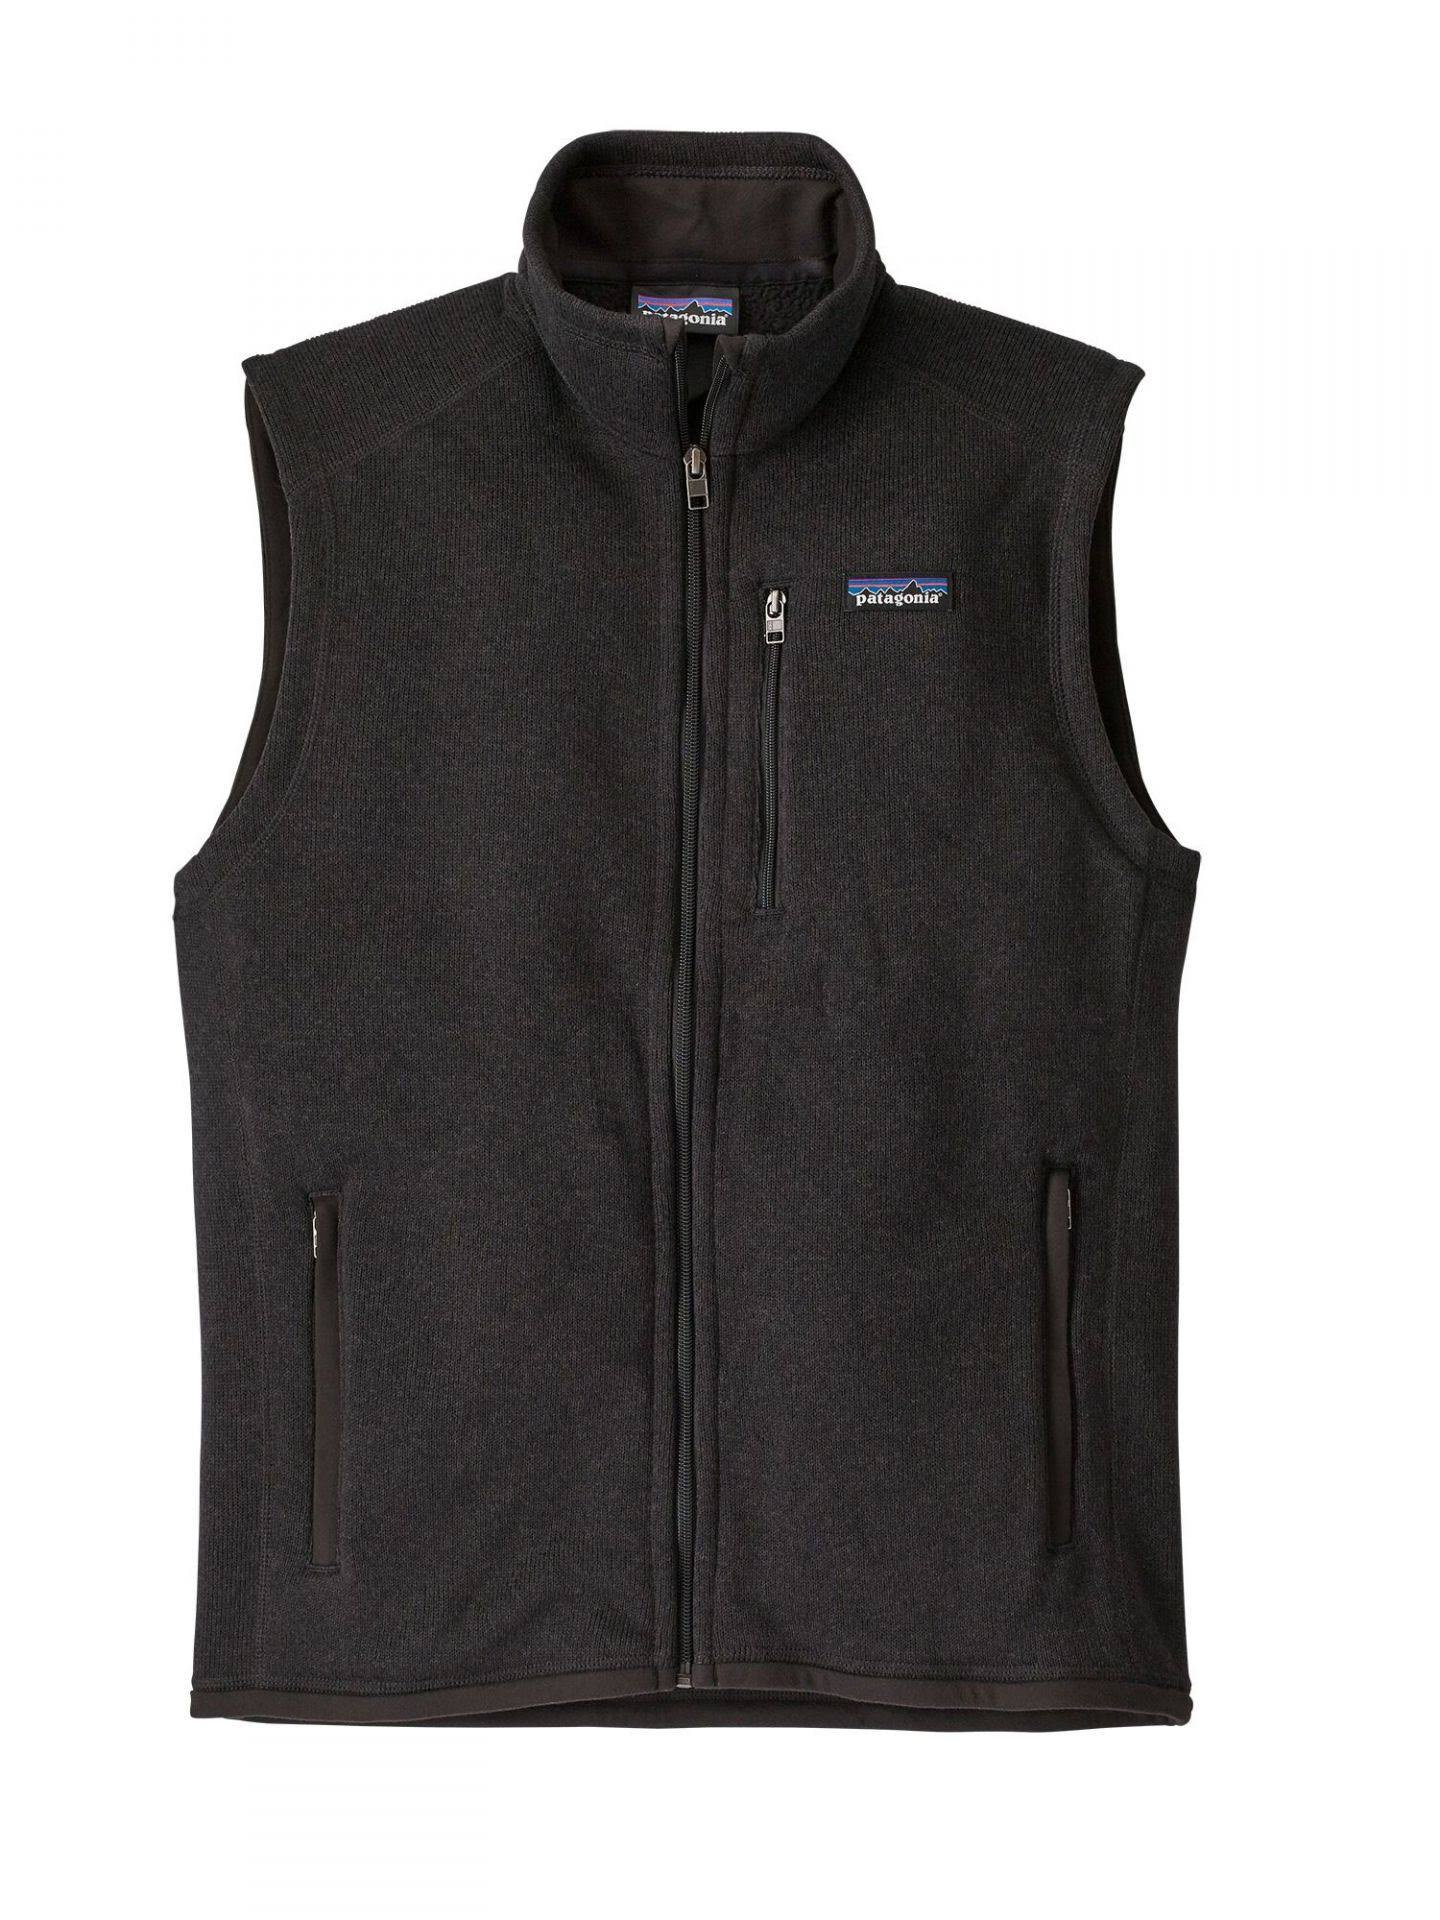 Patagonia Men's Better Sweater Vest - Black, Medium